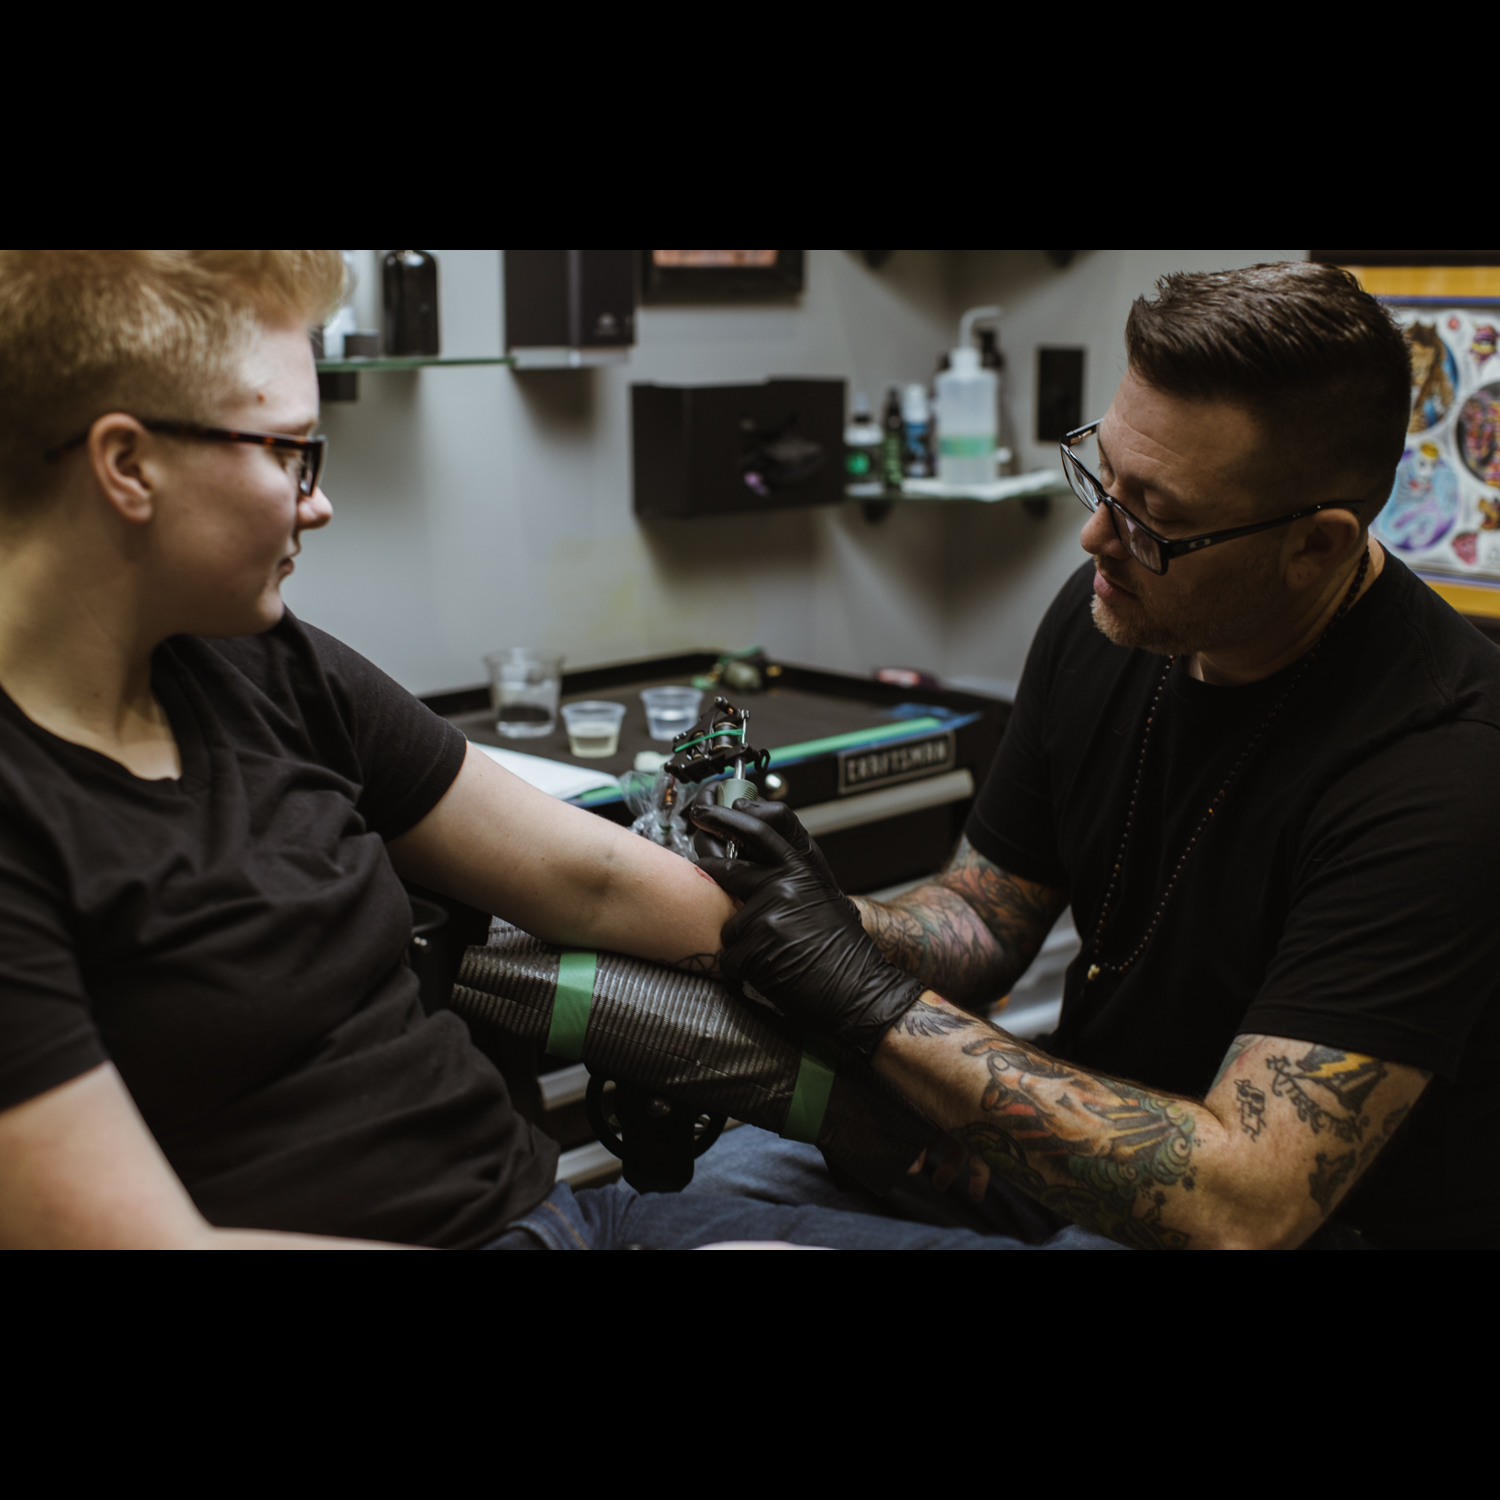 BJ tattooing in the new GreenLion Studios